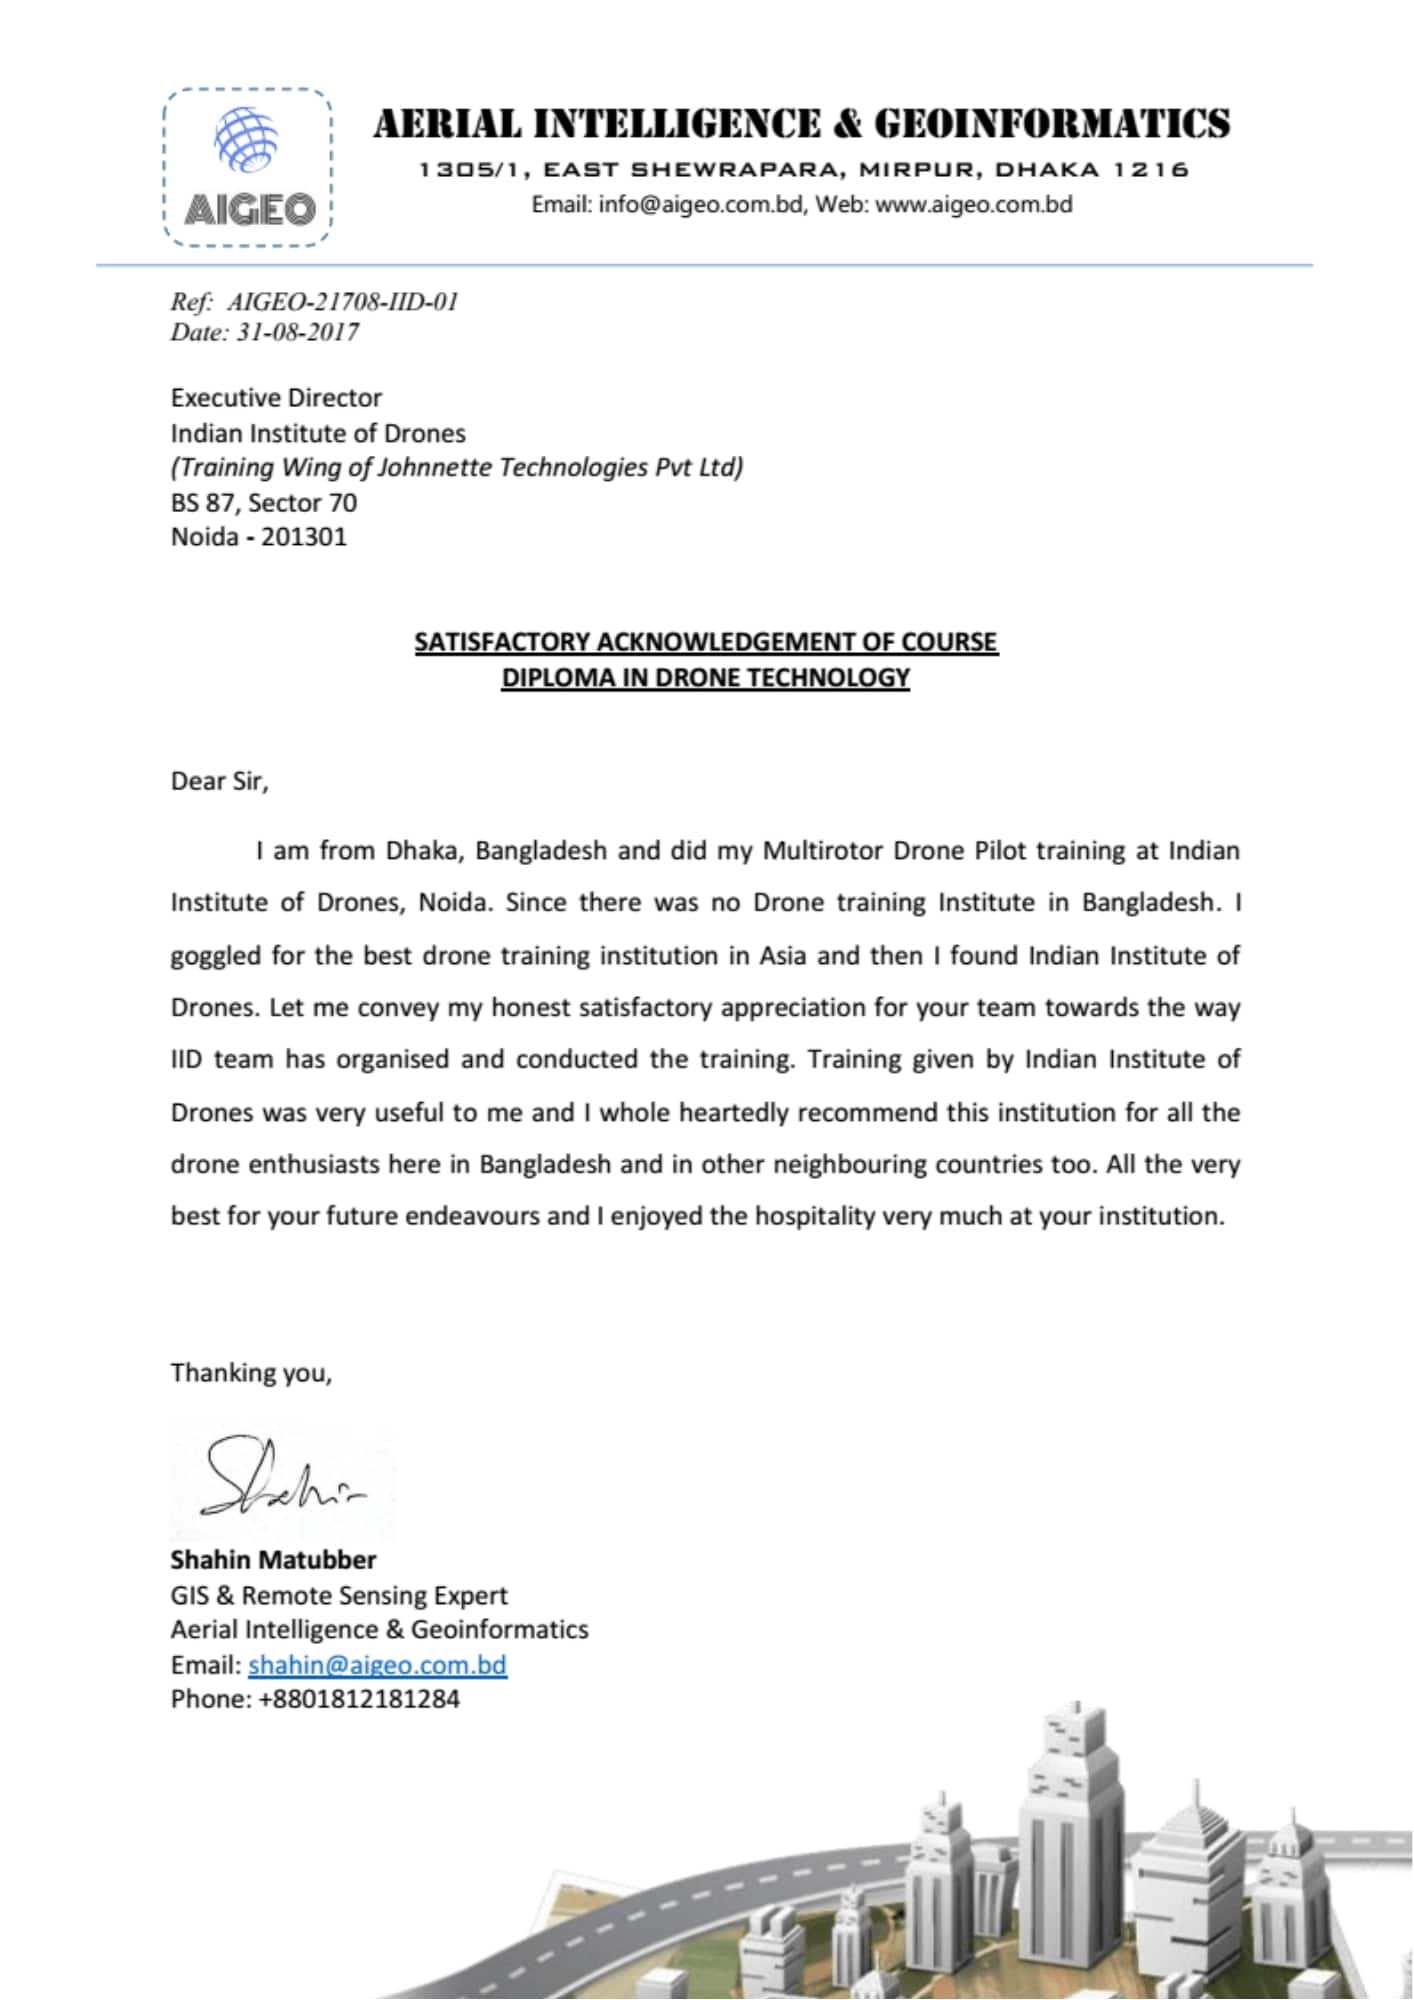 Satisfactory Letter from AIGEO Bangladesh